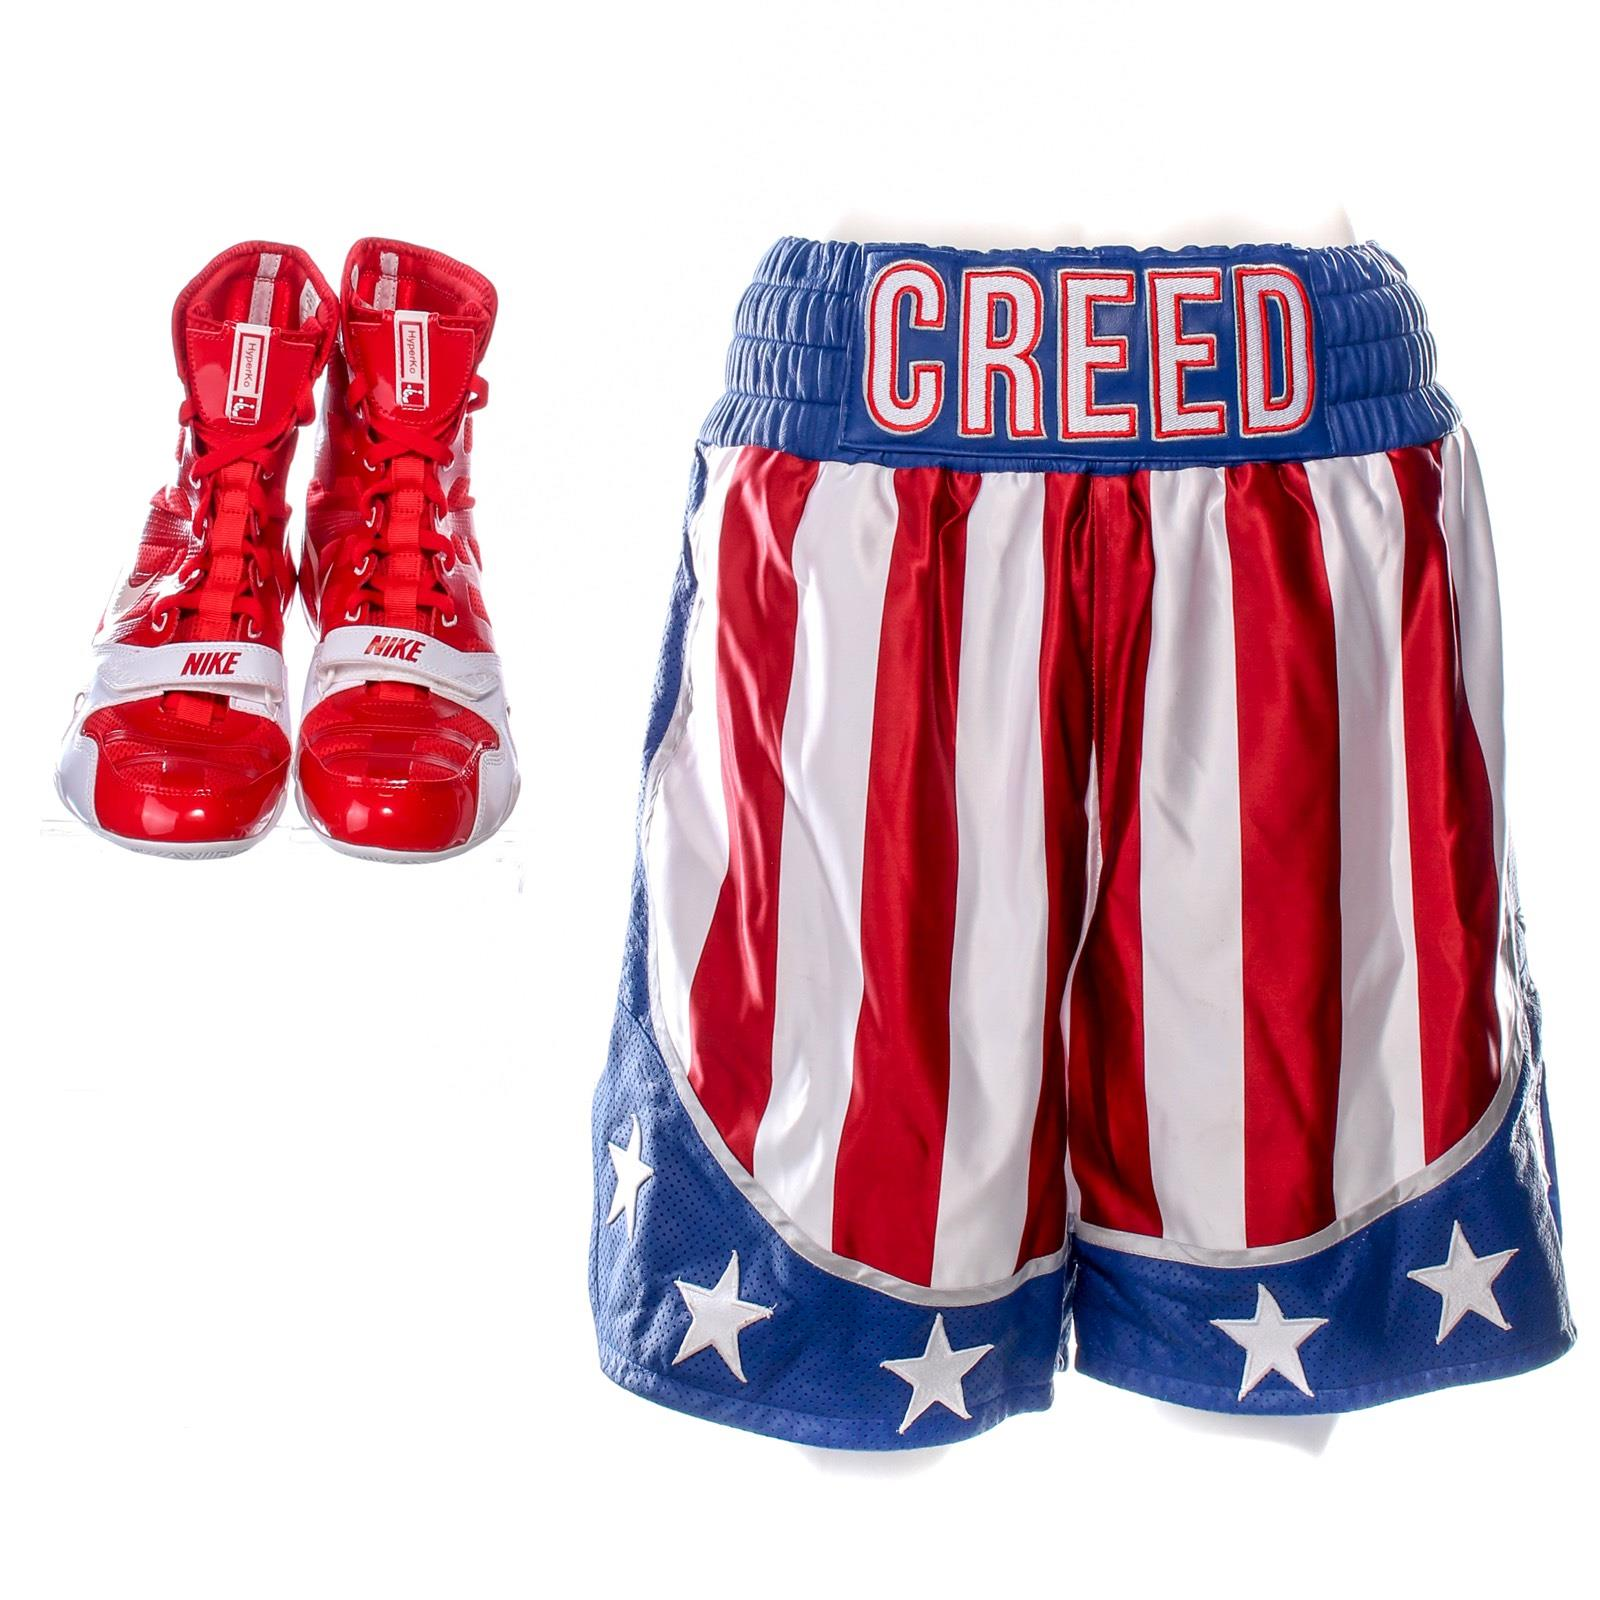 Details about Creed 2 Adonis Creed MIchael B Jordan Screen Worn Shorts  Boxing   Shoes Ch 18 4e38a8b658a3